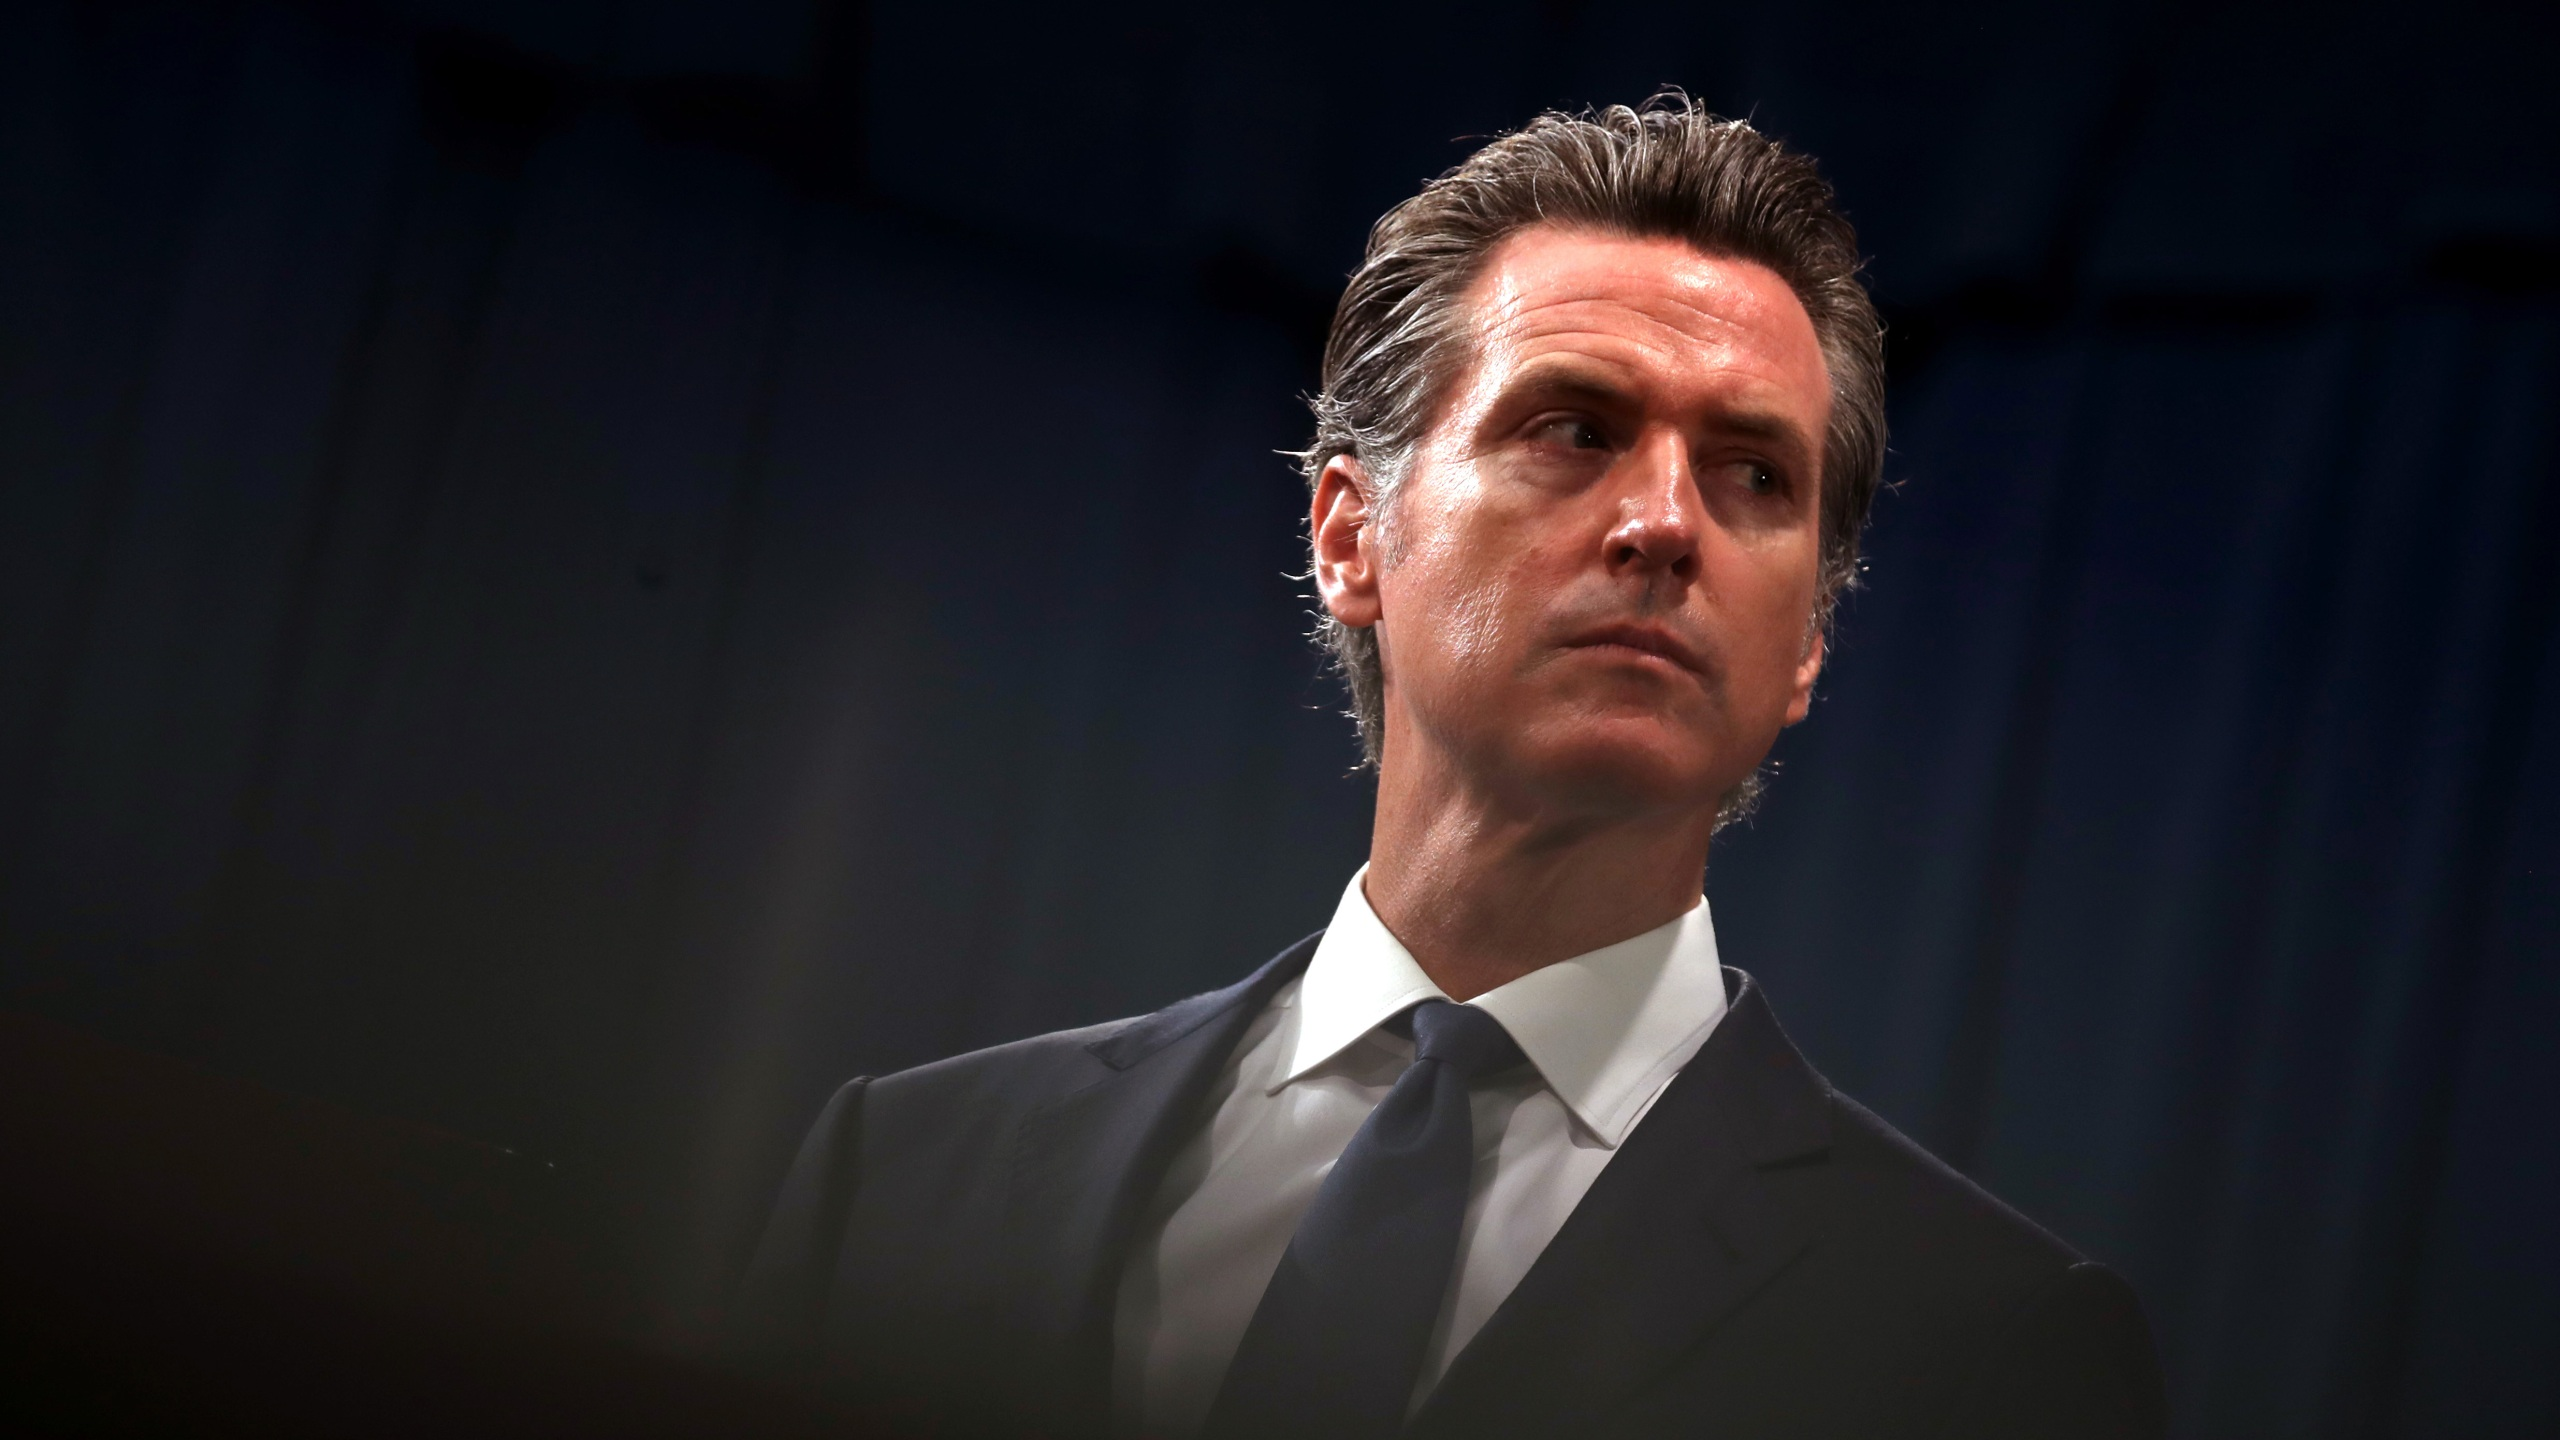 Gov. Gavin Newsom looks on during a news conference with California Attorney General Xavier Becerra in Sacramento on Aug. 16, 2019. (Justin Sullivan / Getty Images)